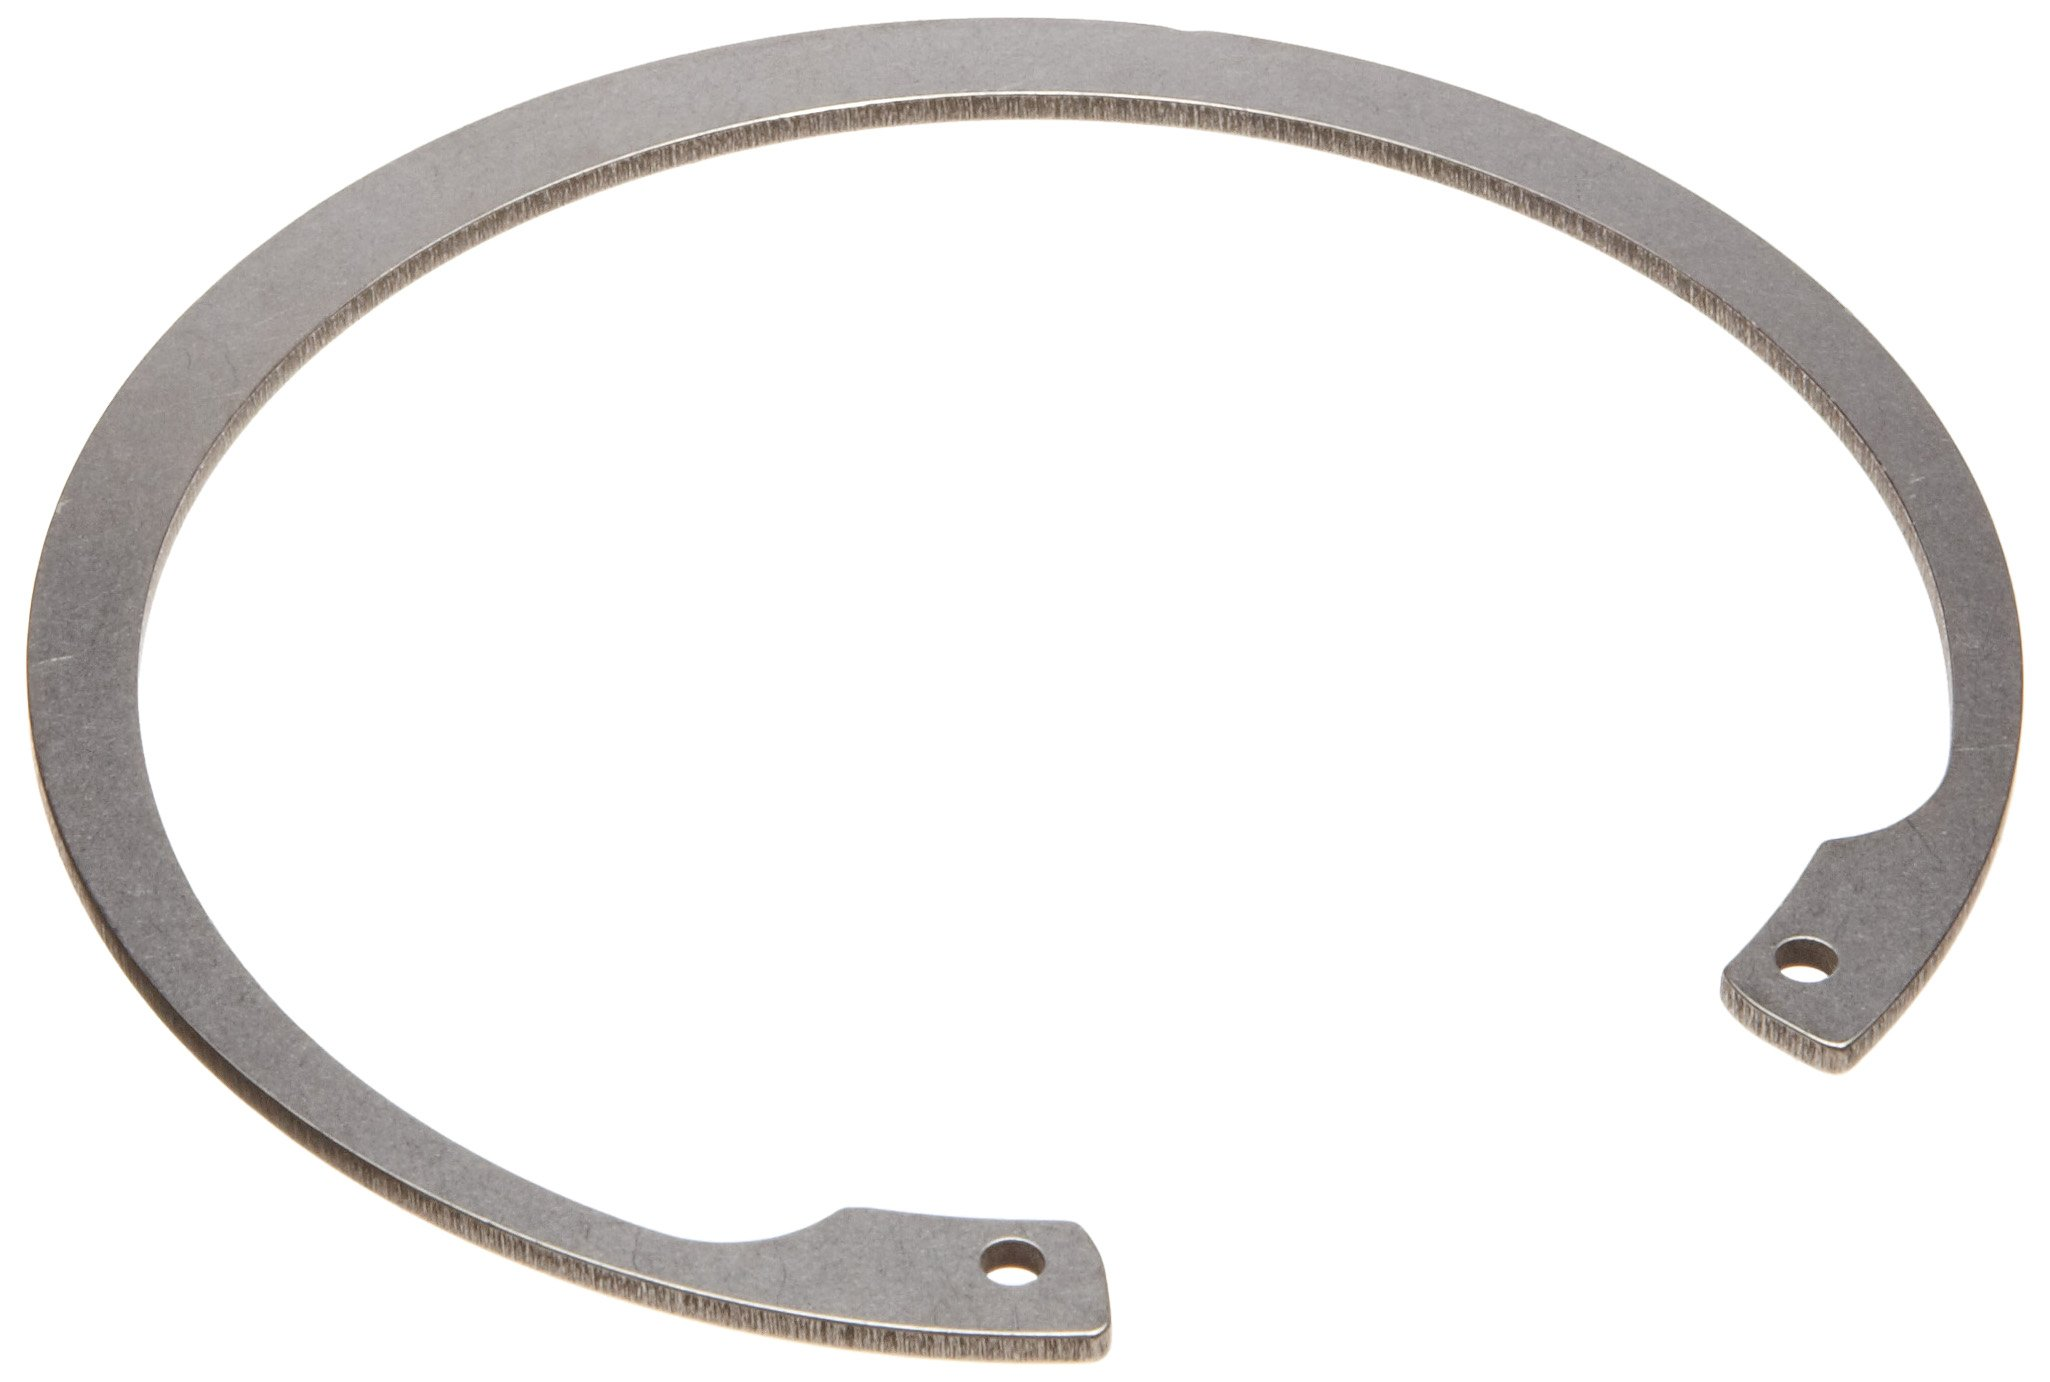 Standard Internal Retaining Ring, Tapered Section, PH15-7 Stainless Steel, Passivated Finish, 1-5/8 Bore Diameter, 0.062'' Thick, Made in US (Pack of 5)